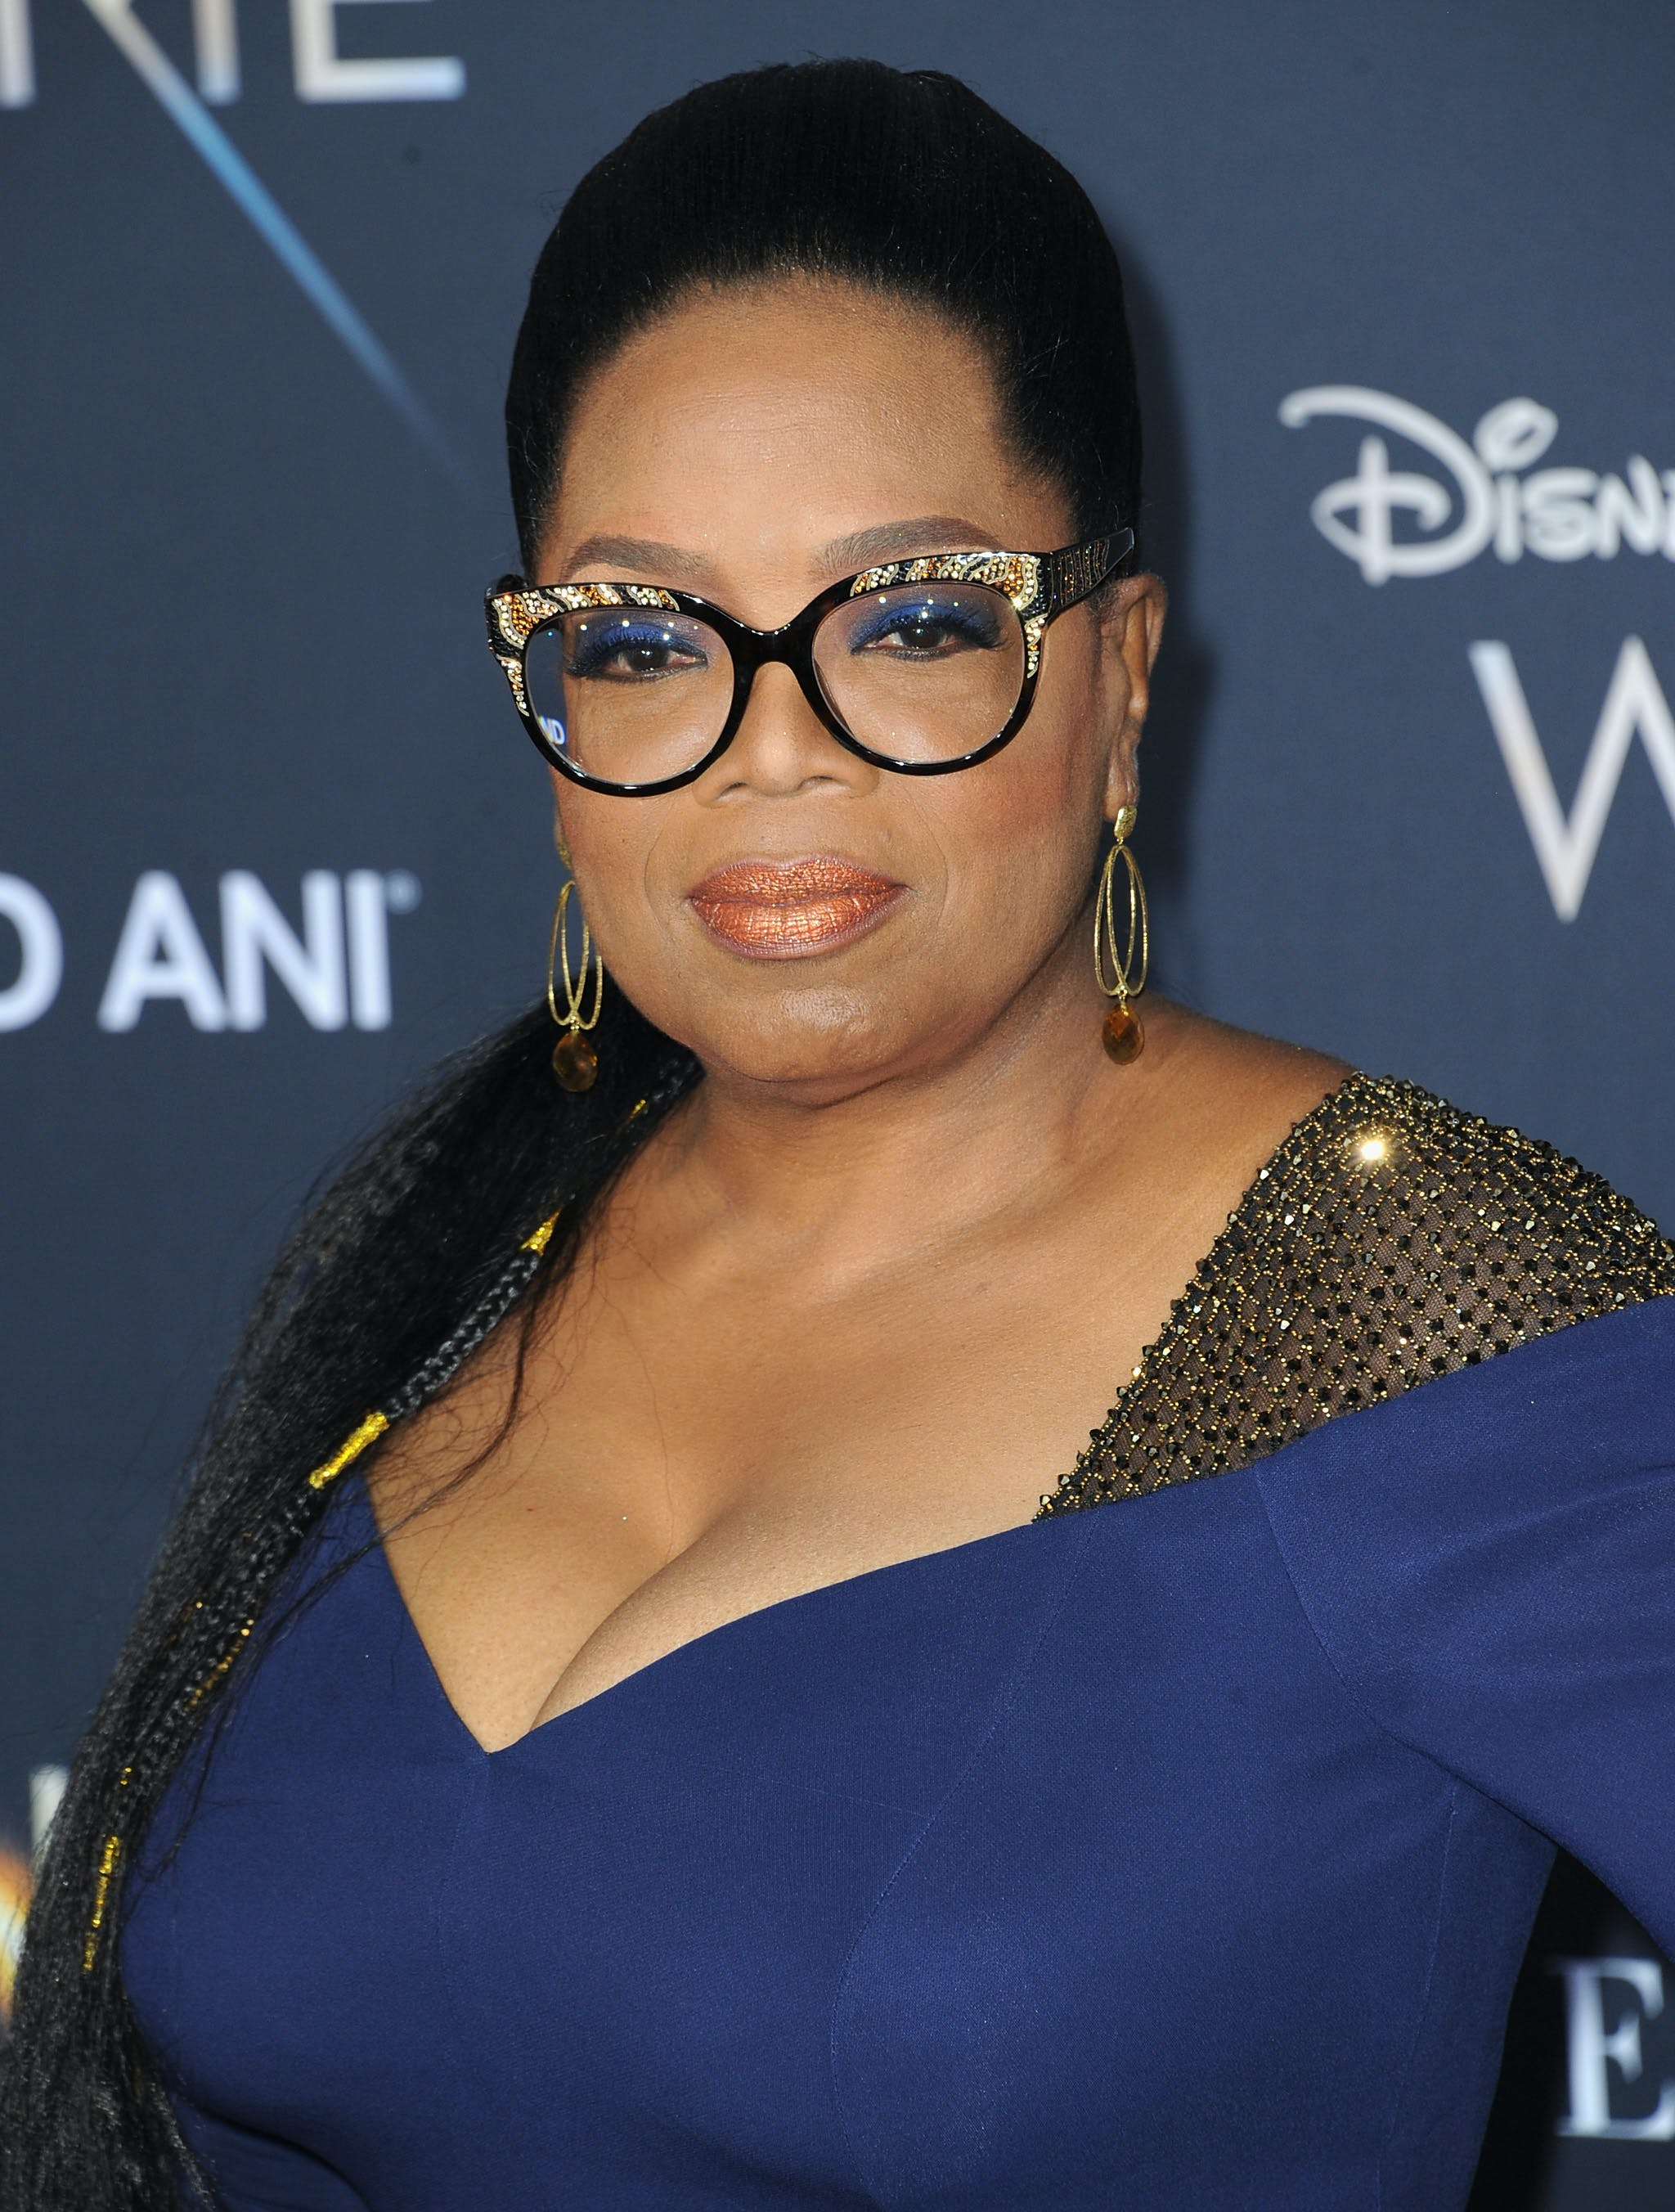 Oprah Winfrey at the premier of A Wrinkle In Time